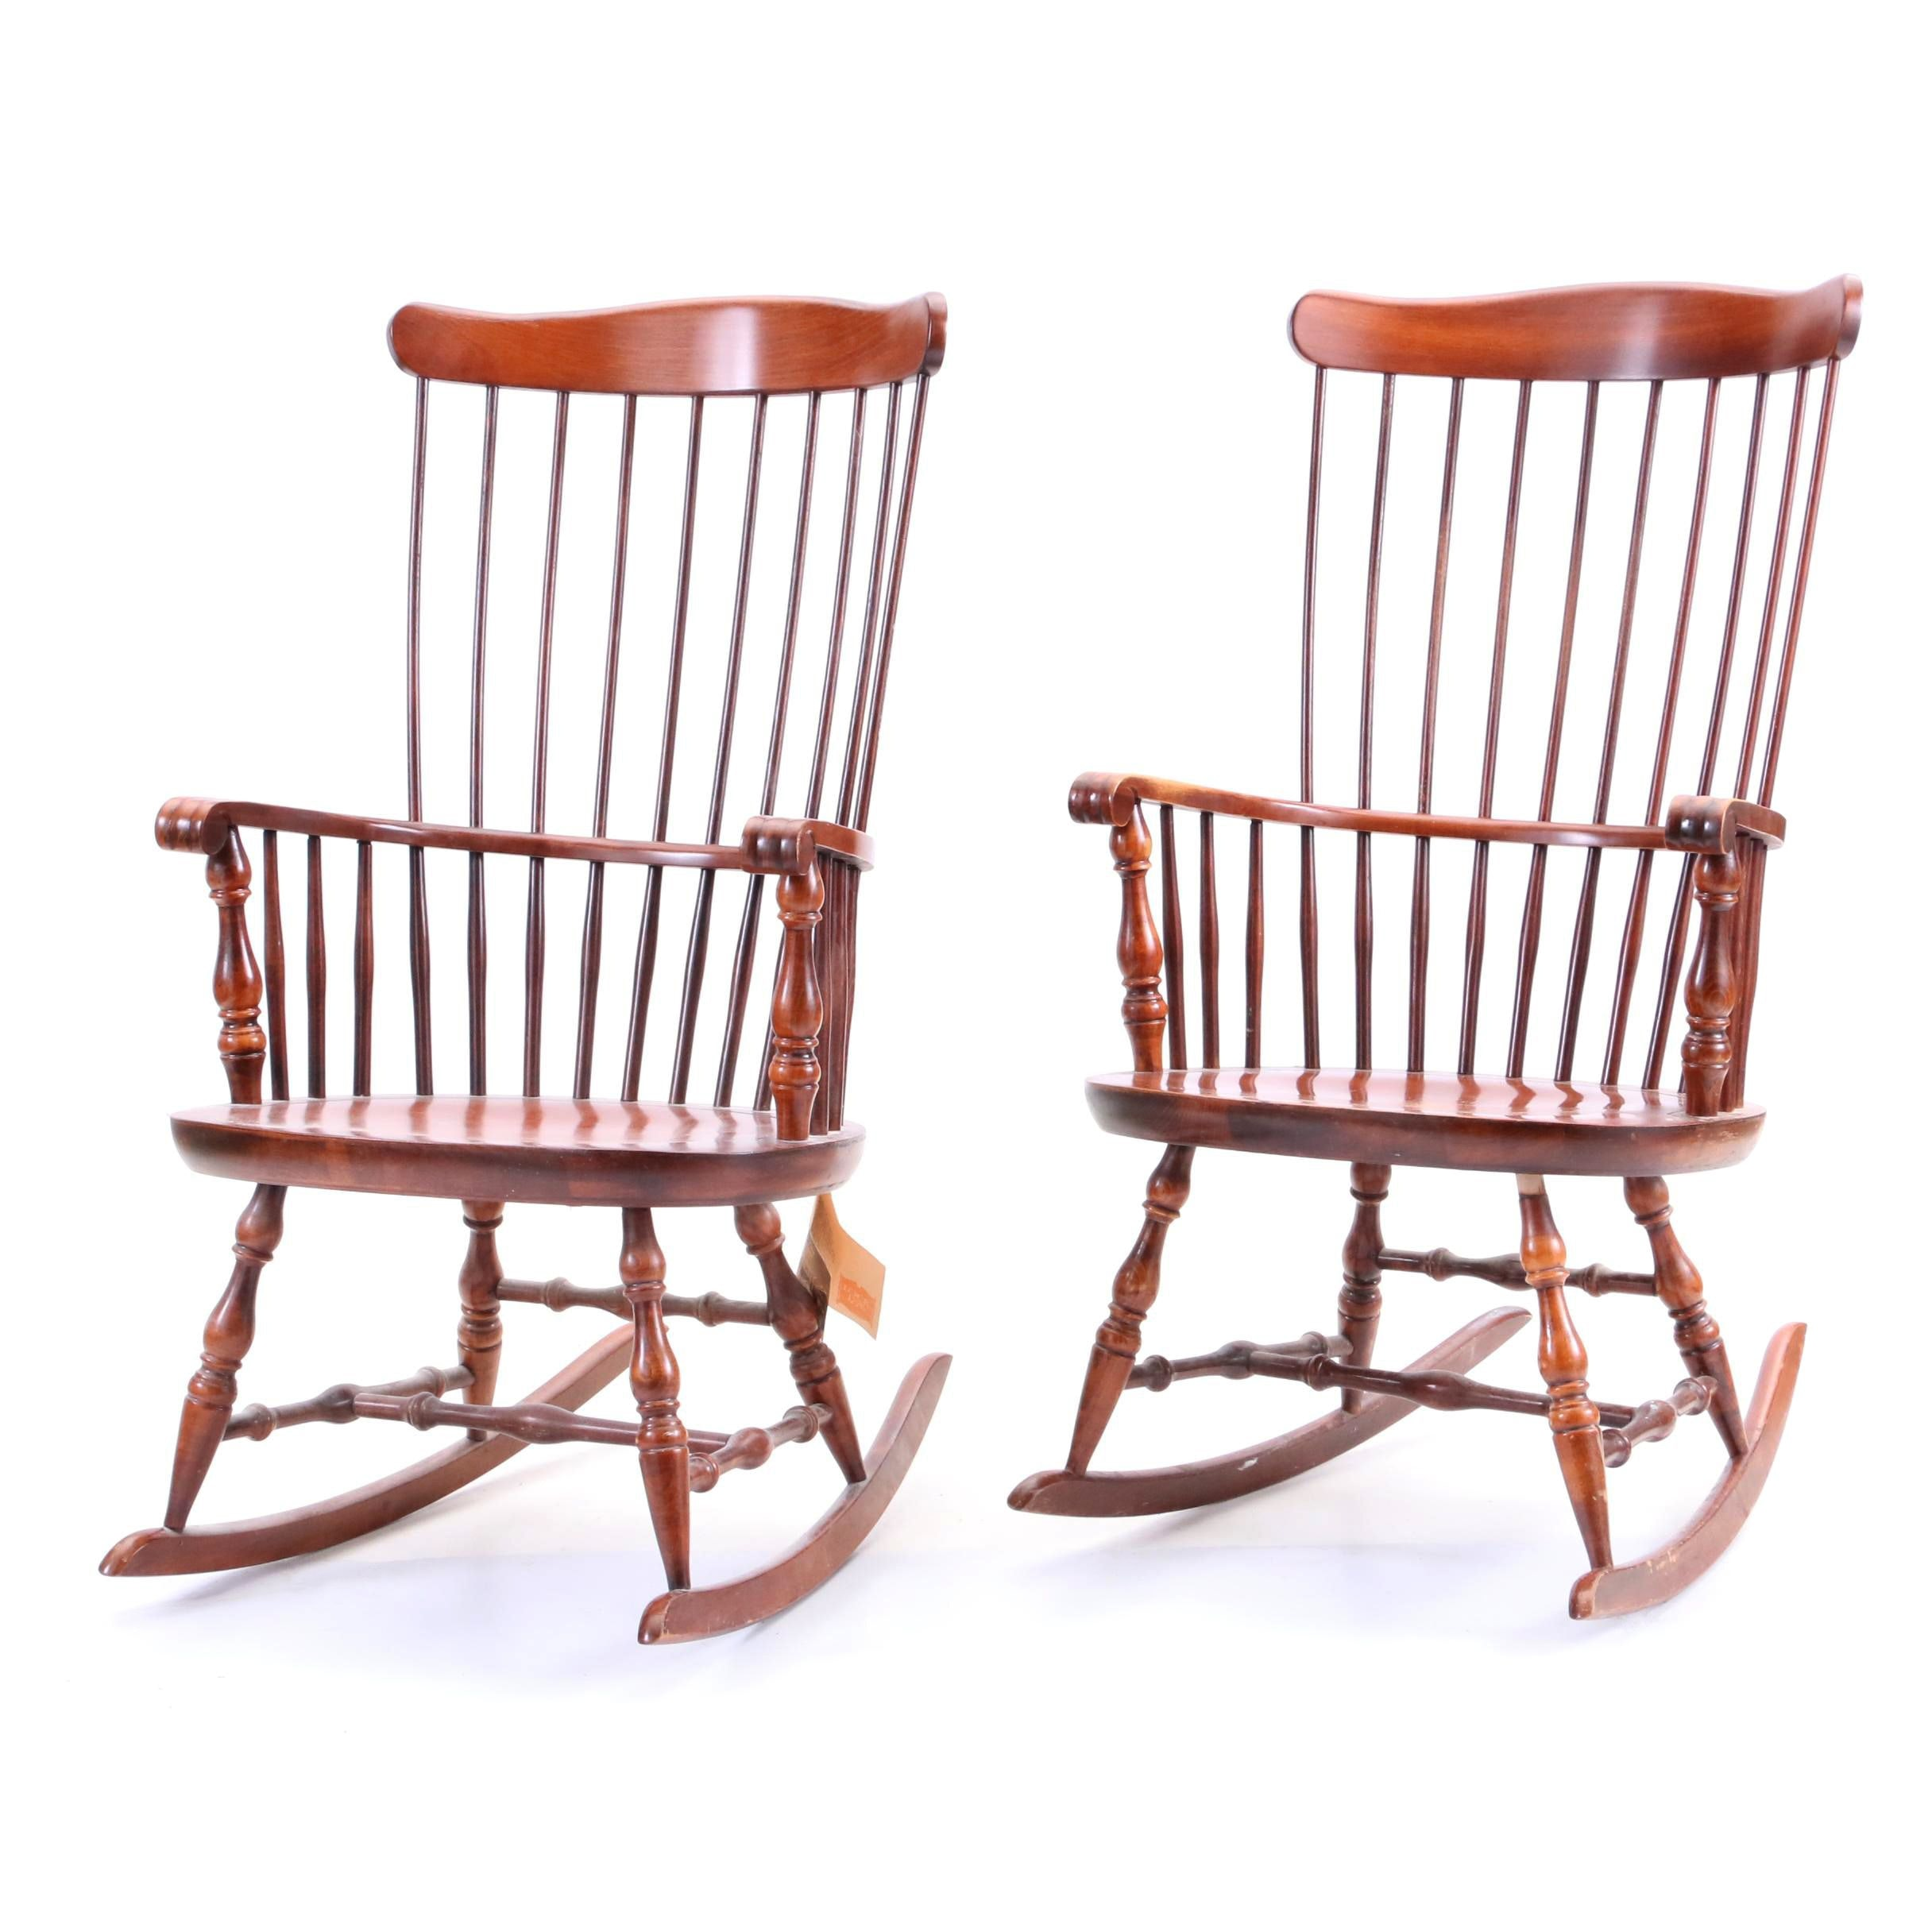 Two Lock Furniture Early American Rocking Chairs In Cherry Finish